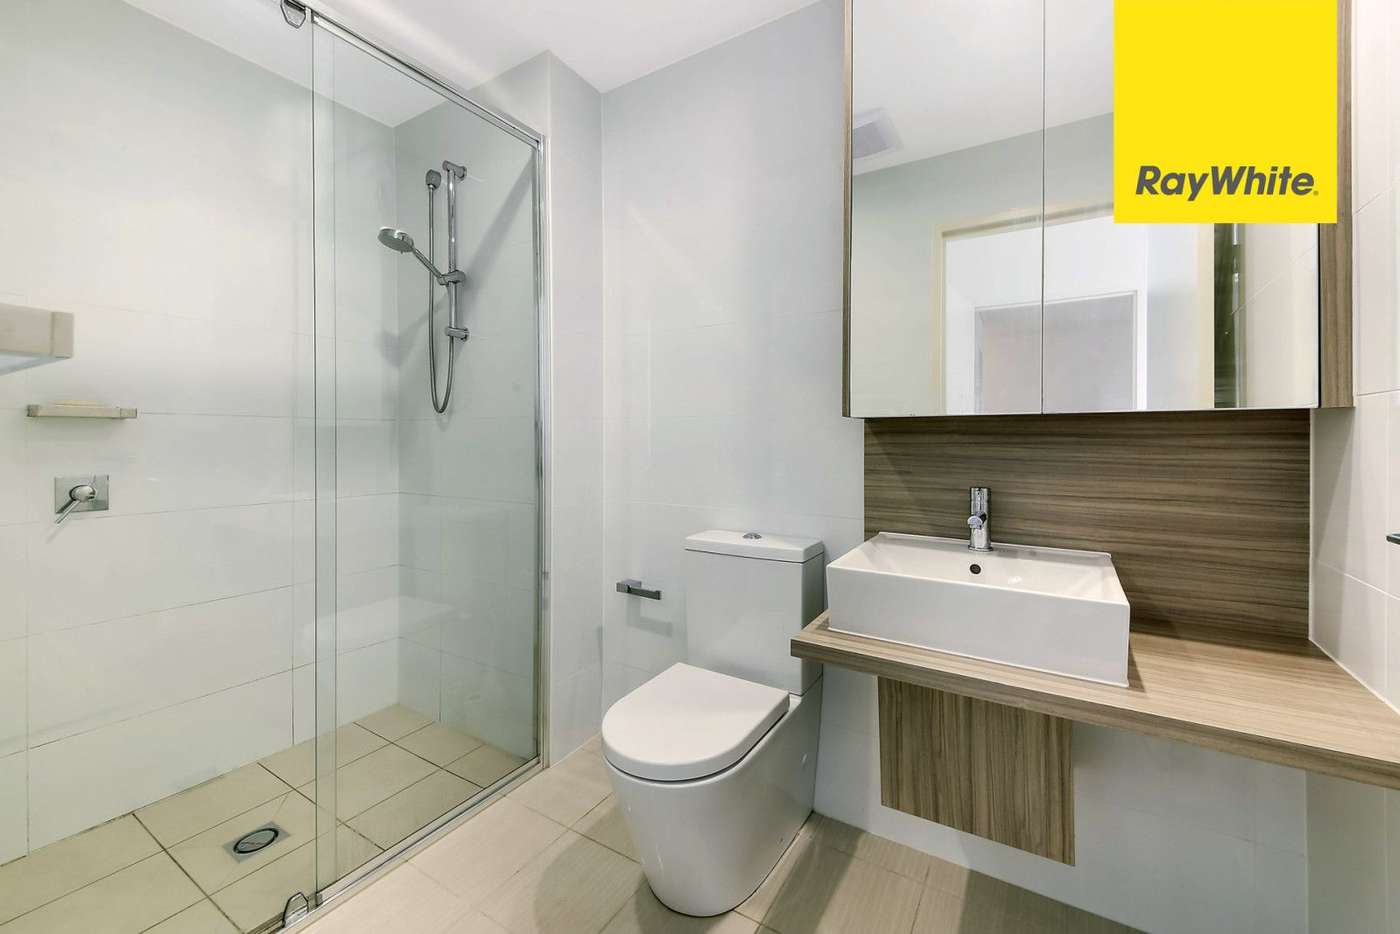 Seventh view of Homely apartment listing, 227/7 Washington Avenue, Riverwood NSW 2210